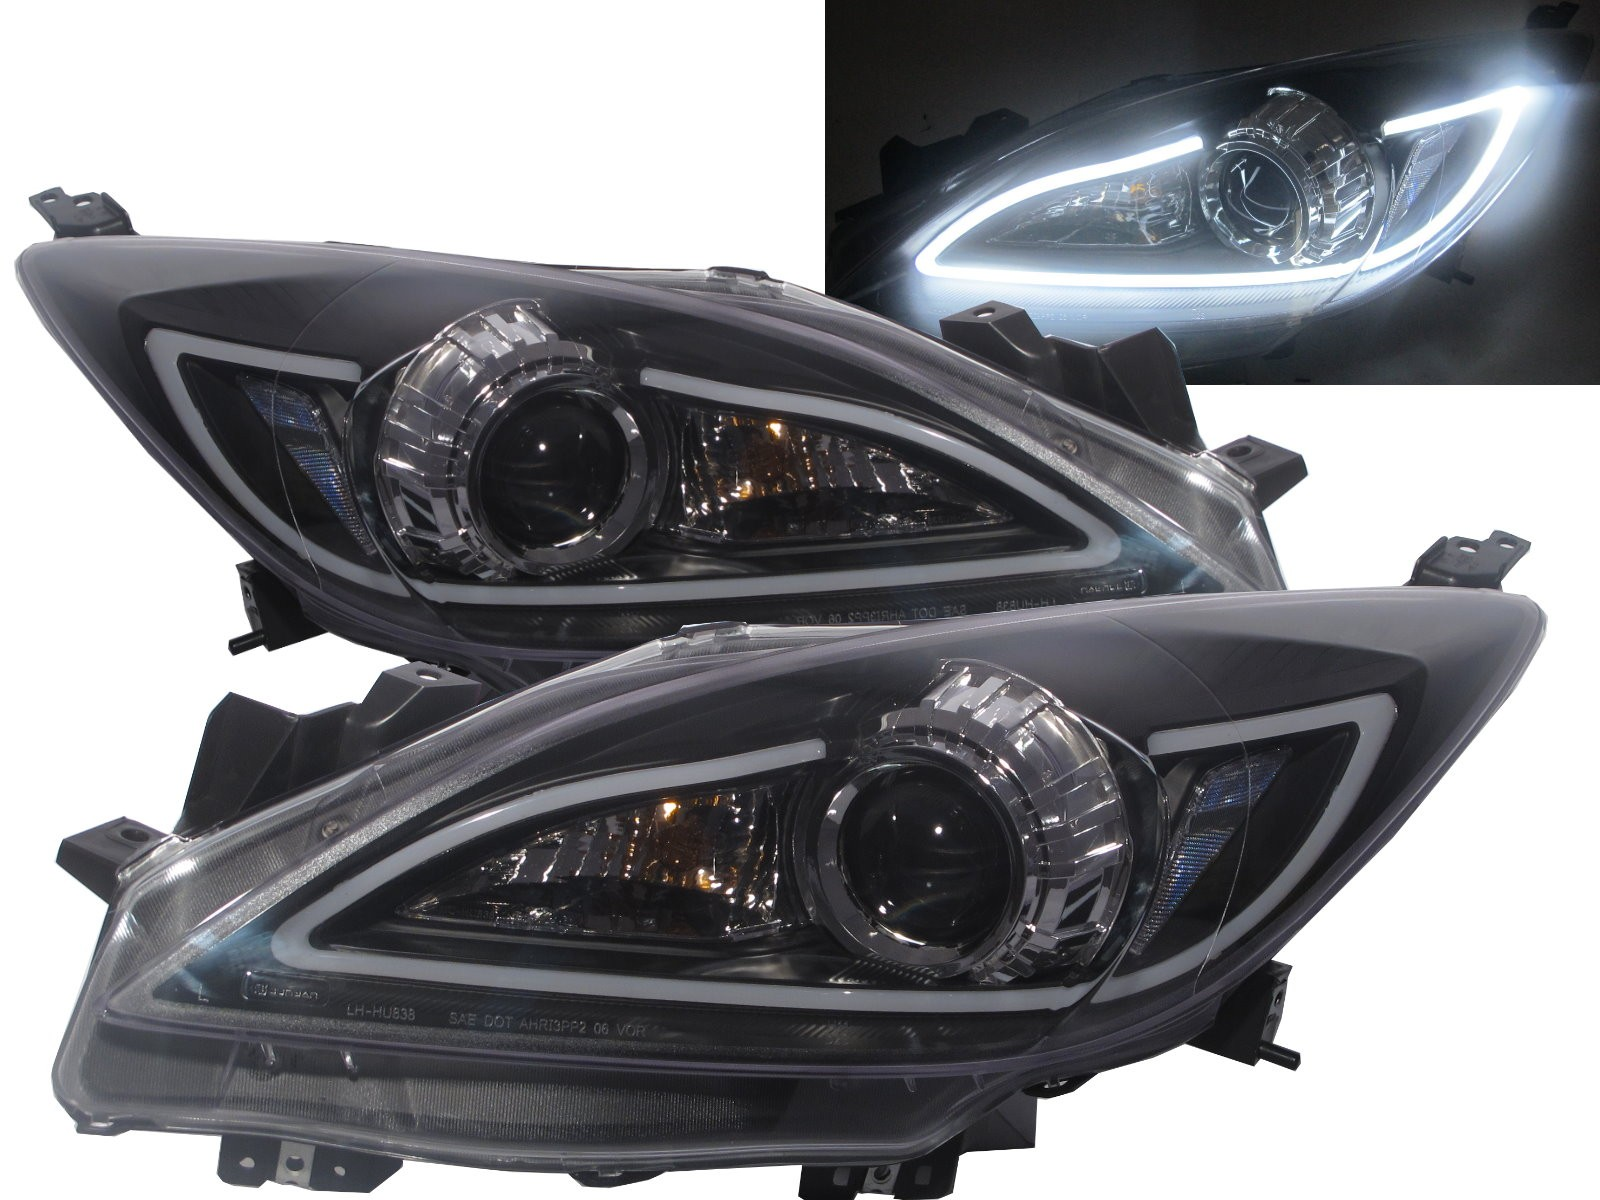 CrazyTheGod Mazda3/Axela BL Second generation 2009-2013 Sedan/Hatchback 4D/5D Projector R8Look Headlight Headlamp Black US V1 for MAZDA LHD